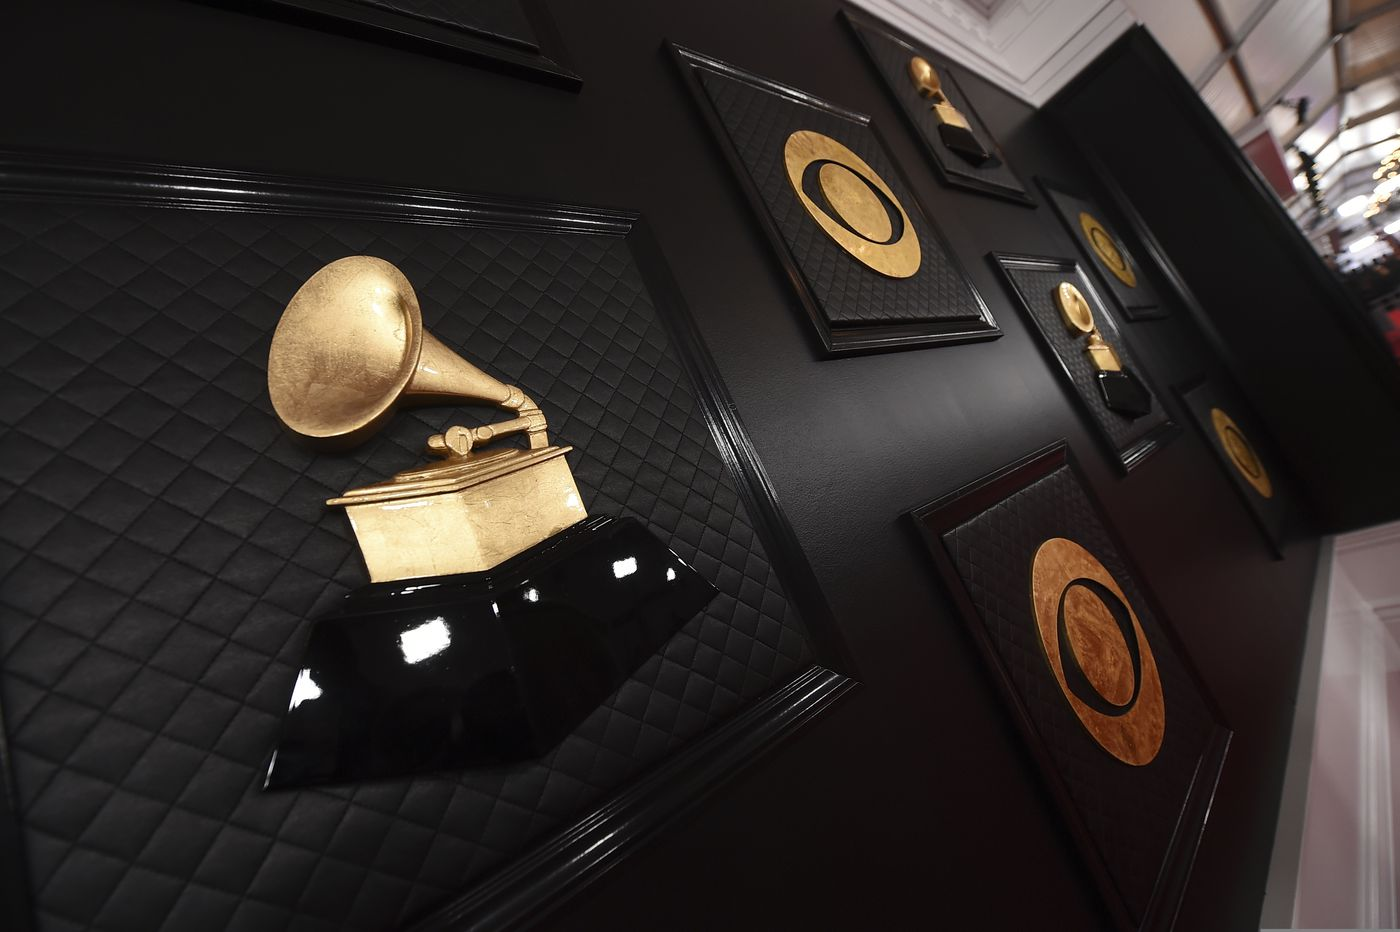 Grammy Awards postponed to March 14 due to coronavirus surge in Los Angeles